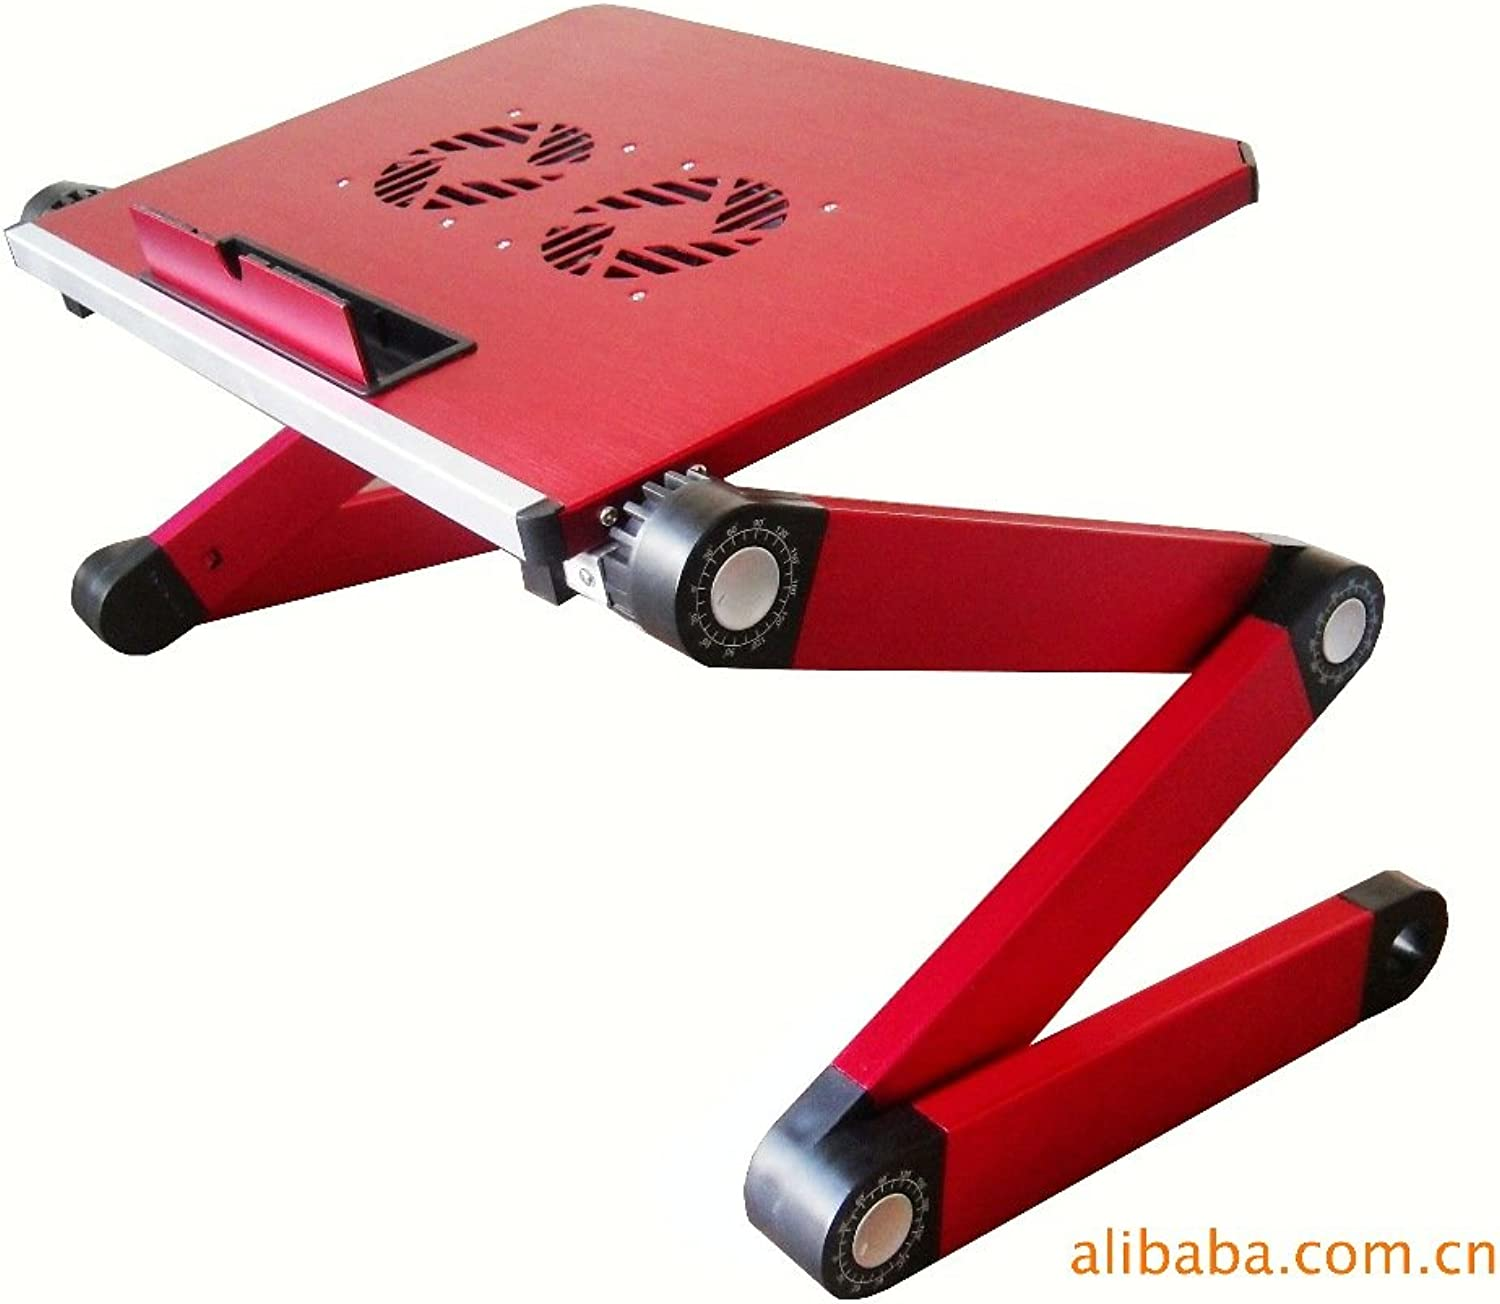 Qiaoba- Bed Computer Desk_ Notebook Lapdesk Aluminum Alloy Computer Desk Folding Tables Bed